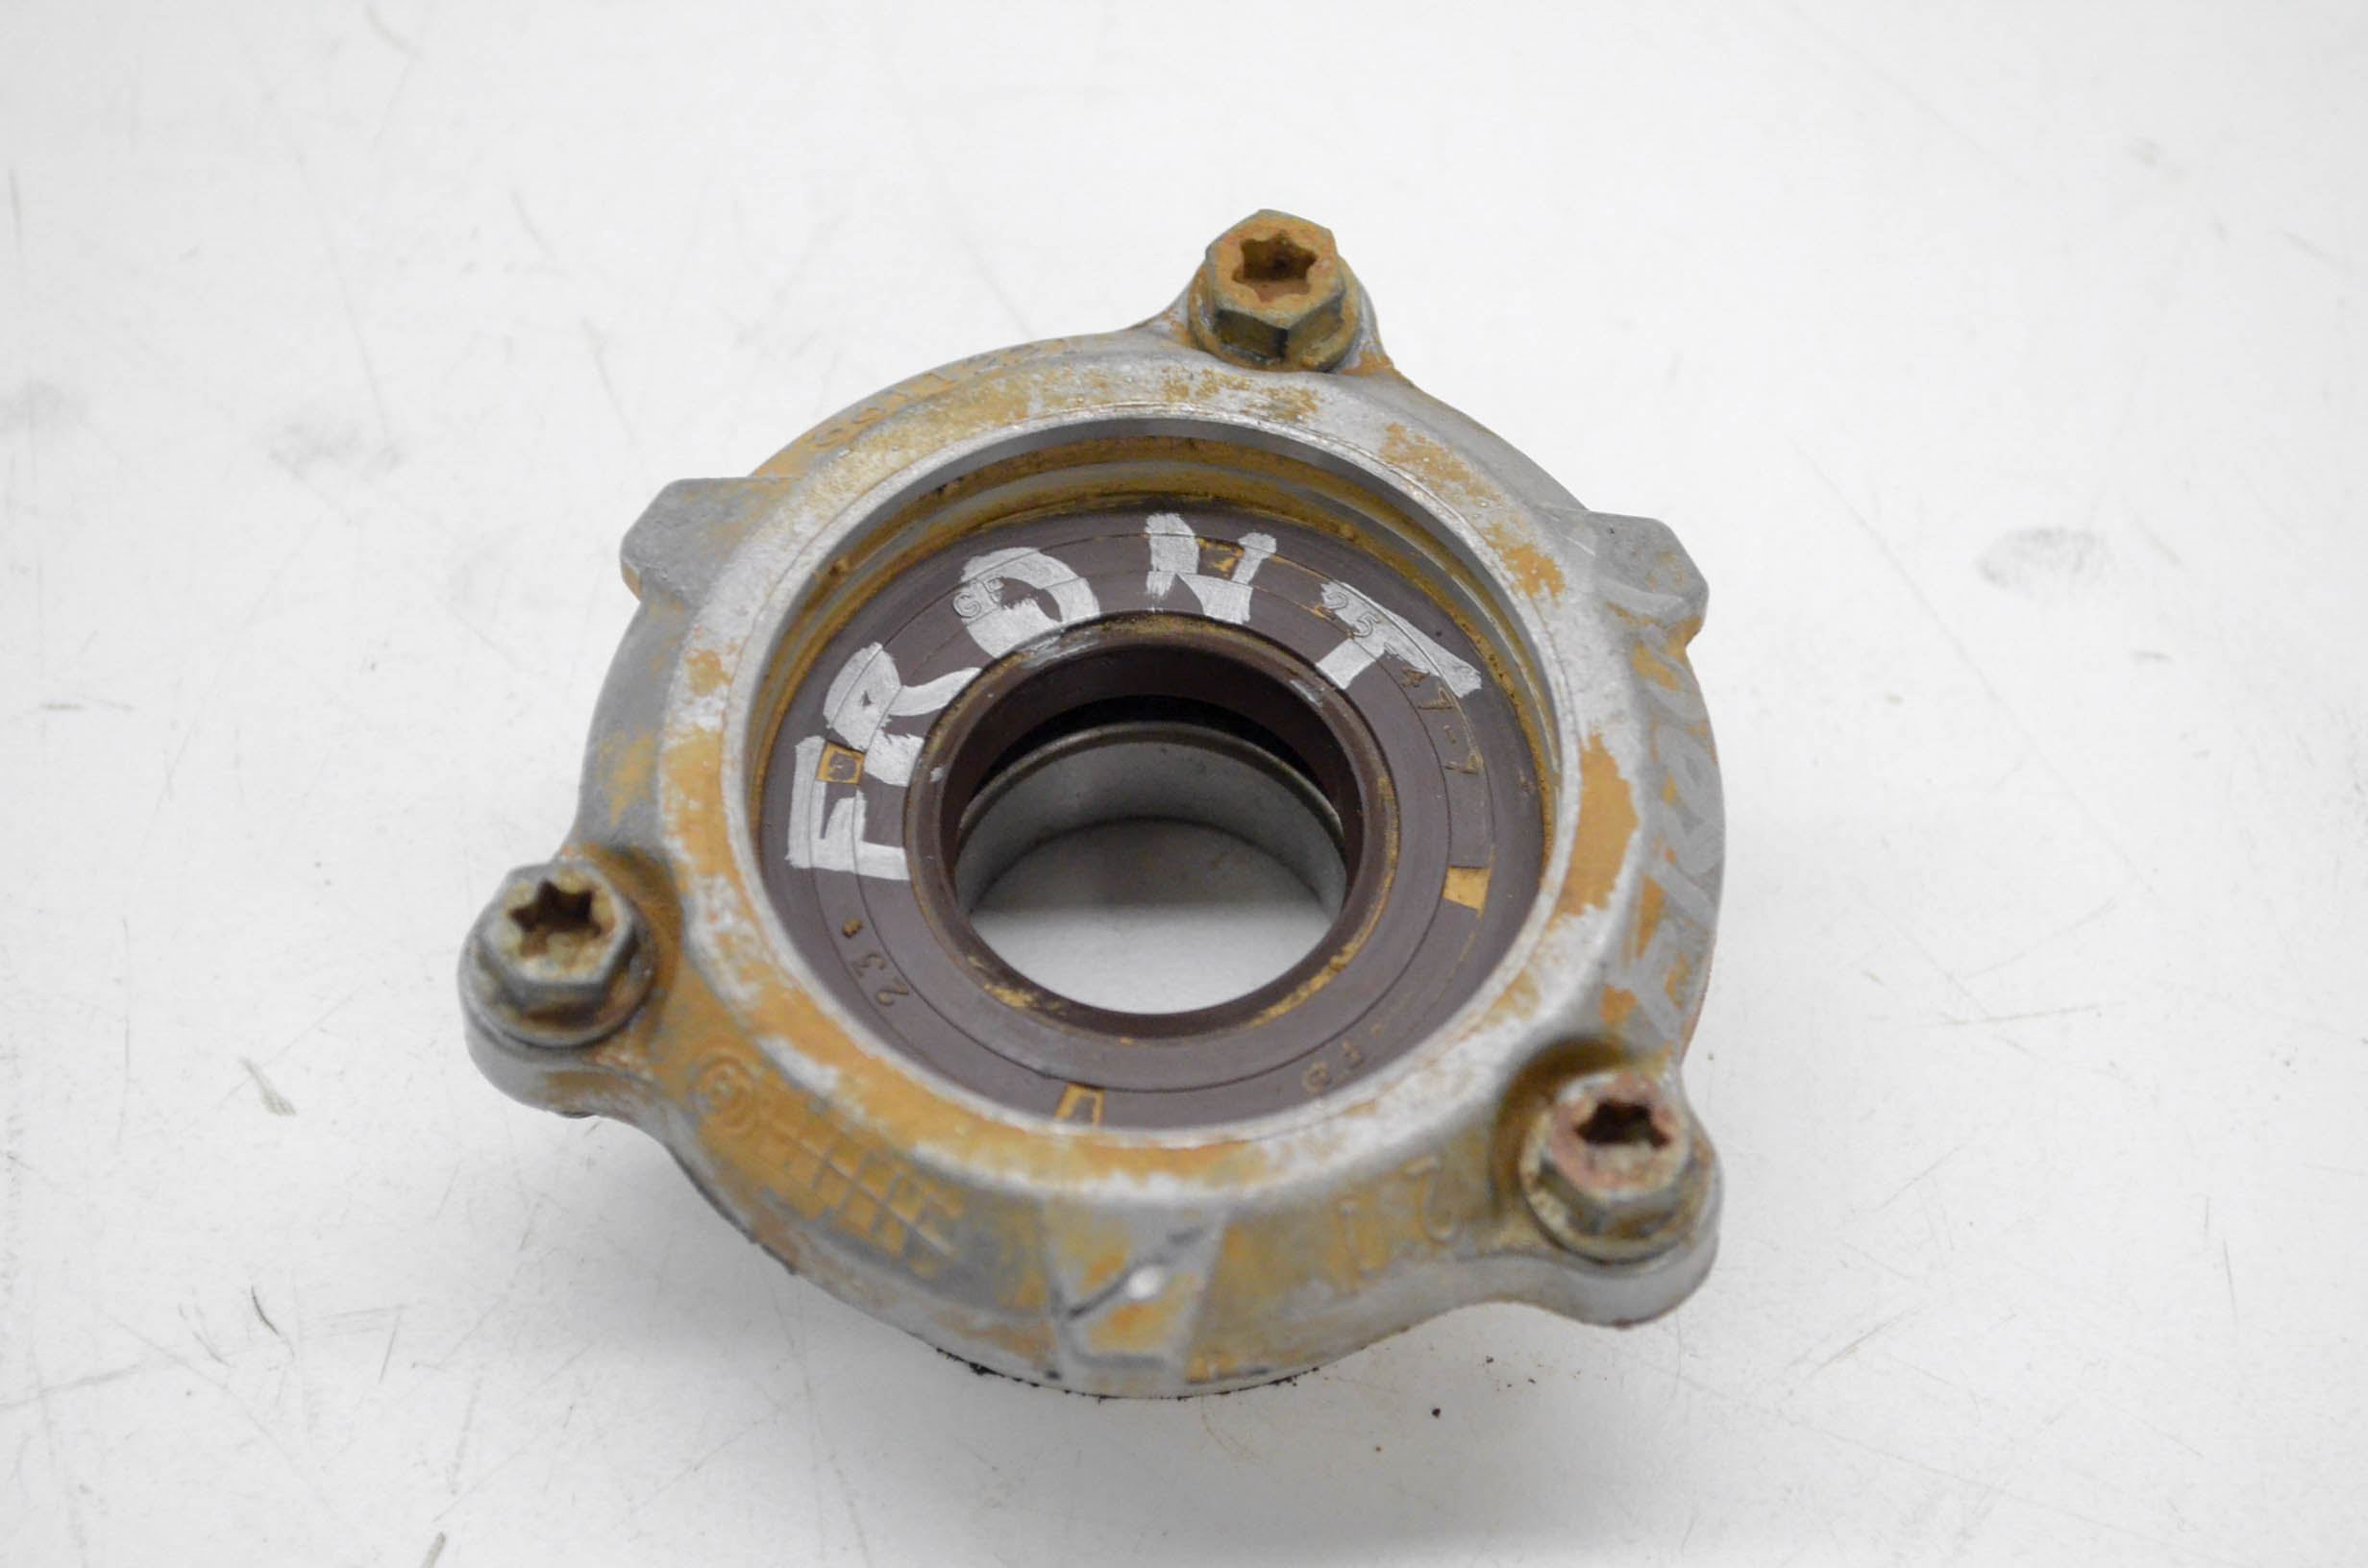 13 Can-Am Outlander 1000 XT 4x4 Front Drive Shaft Bearing Cover